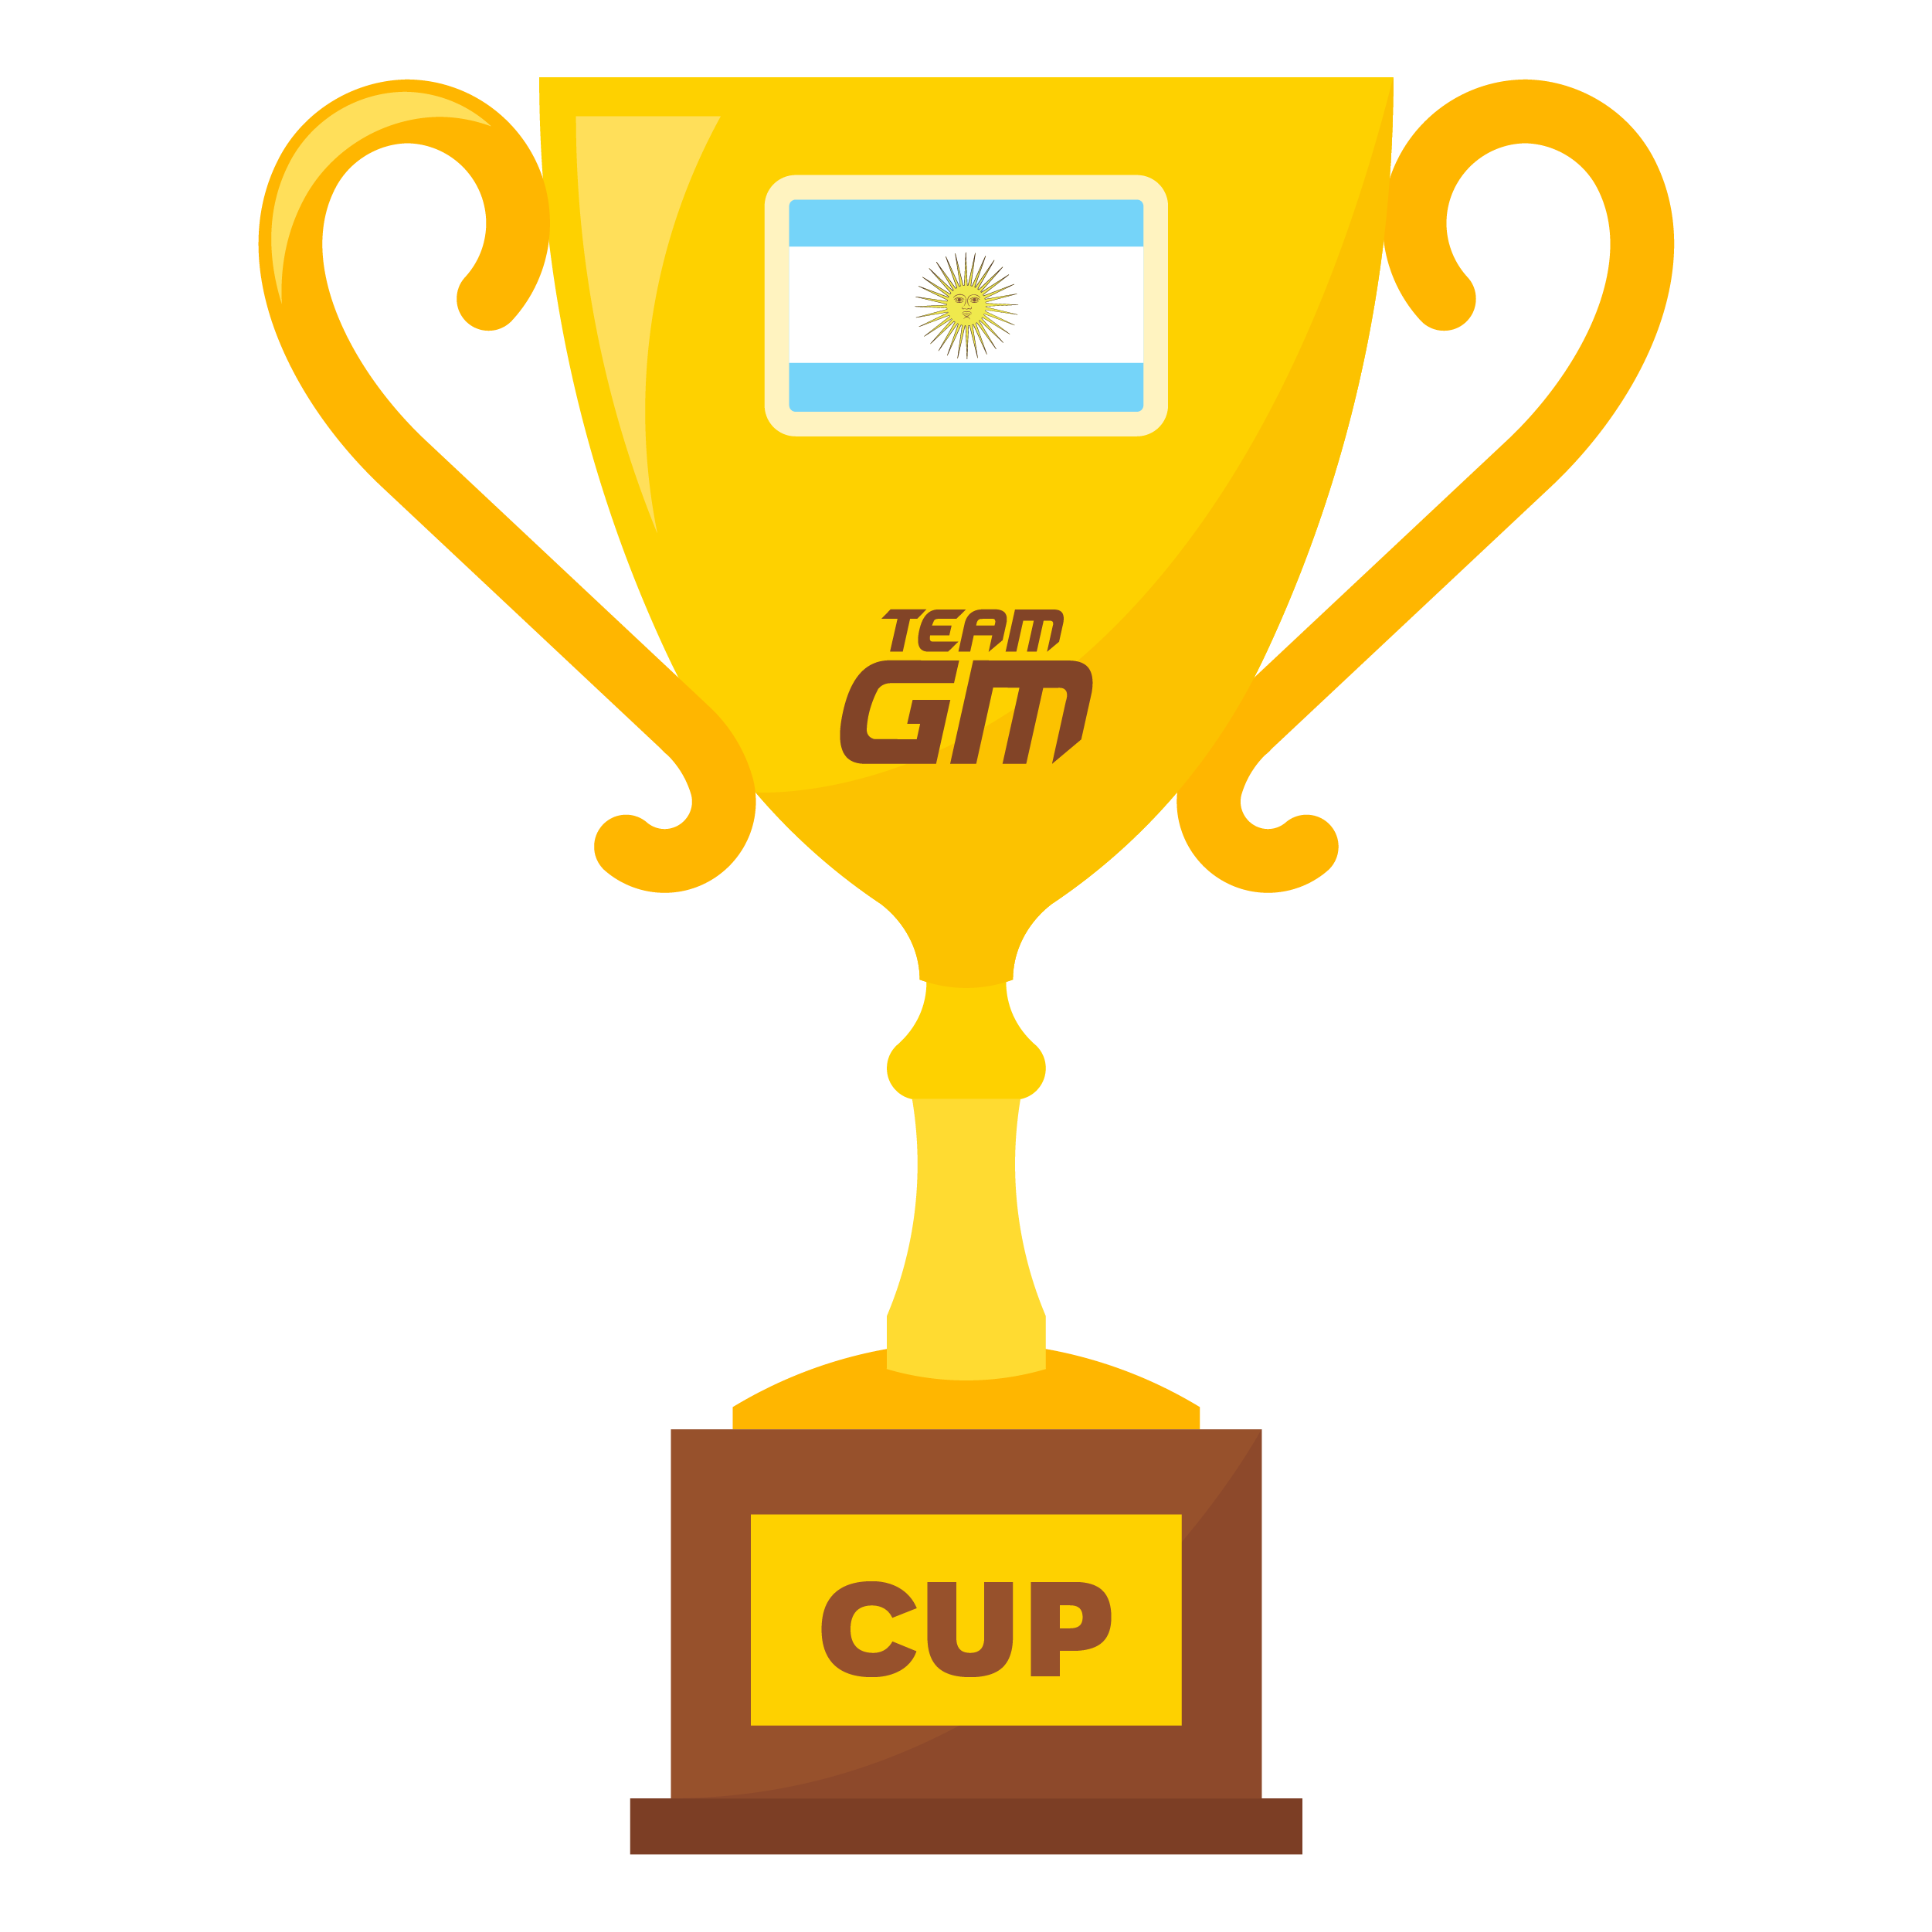 1ST - ARGENTINA CUP